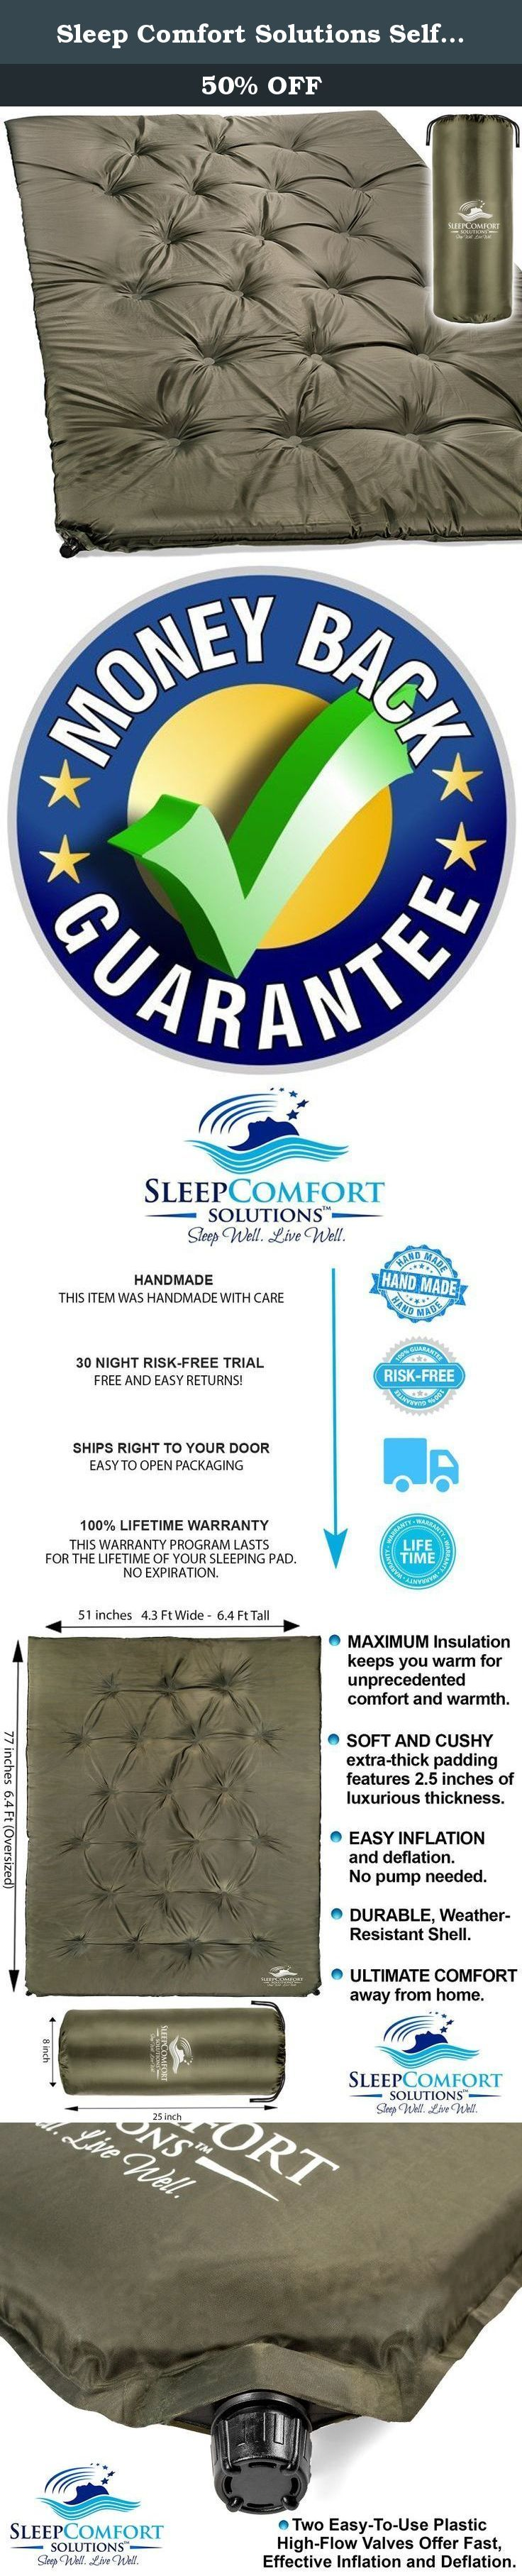 Sleep Comfort Solutions Self-Inflating Sleeping Pad Double XL | Our Most-Comfortable Sleeping Mat in a New Double Size. It Insulates and Cushions Exceptionally Well, Anywhere You're Camping. Sleep Comfort Solutions, Inc. offers the most compact, comfortable, self-inflating sleeping pad double for couples. We bring self-inflating technology to a lightweight pad for two. Perfect for basecamp or car camping. Top Features: • Easy Operating Valves The two easy-to-use plastic valves offer fast...